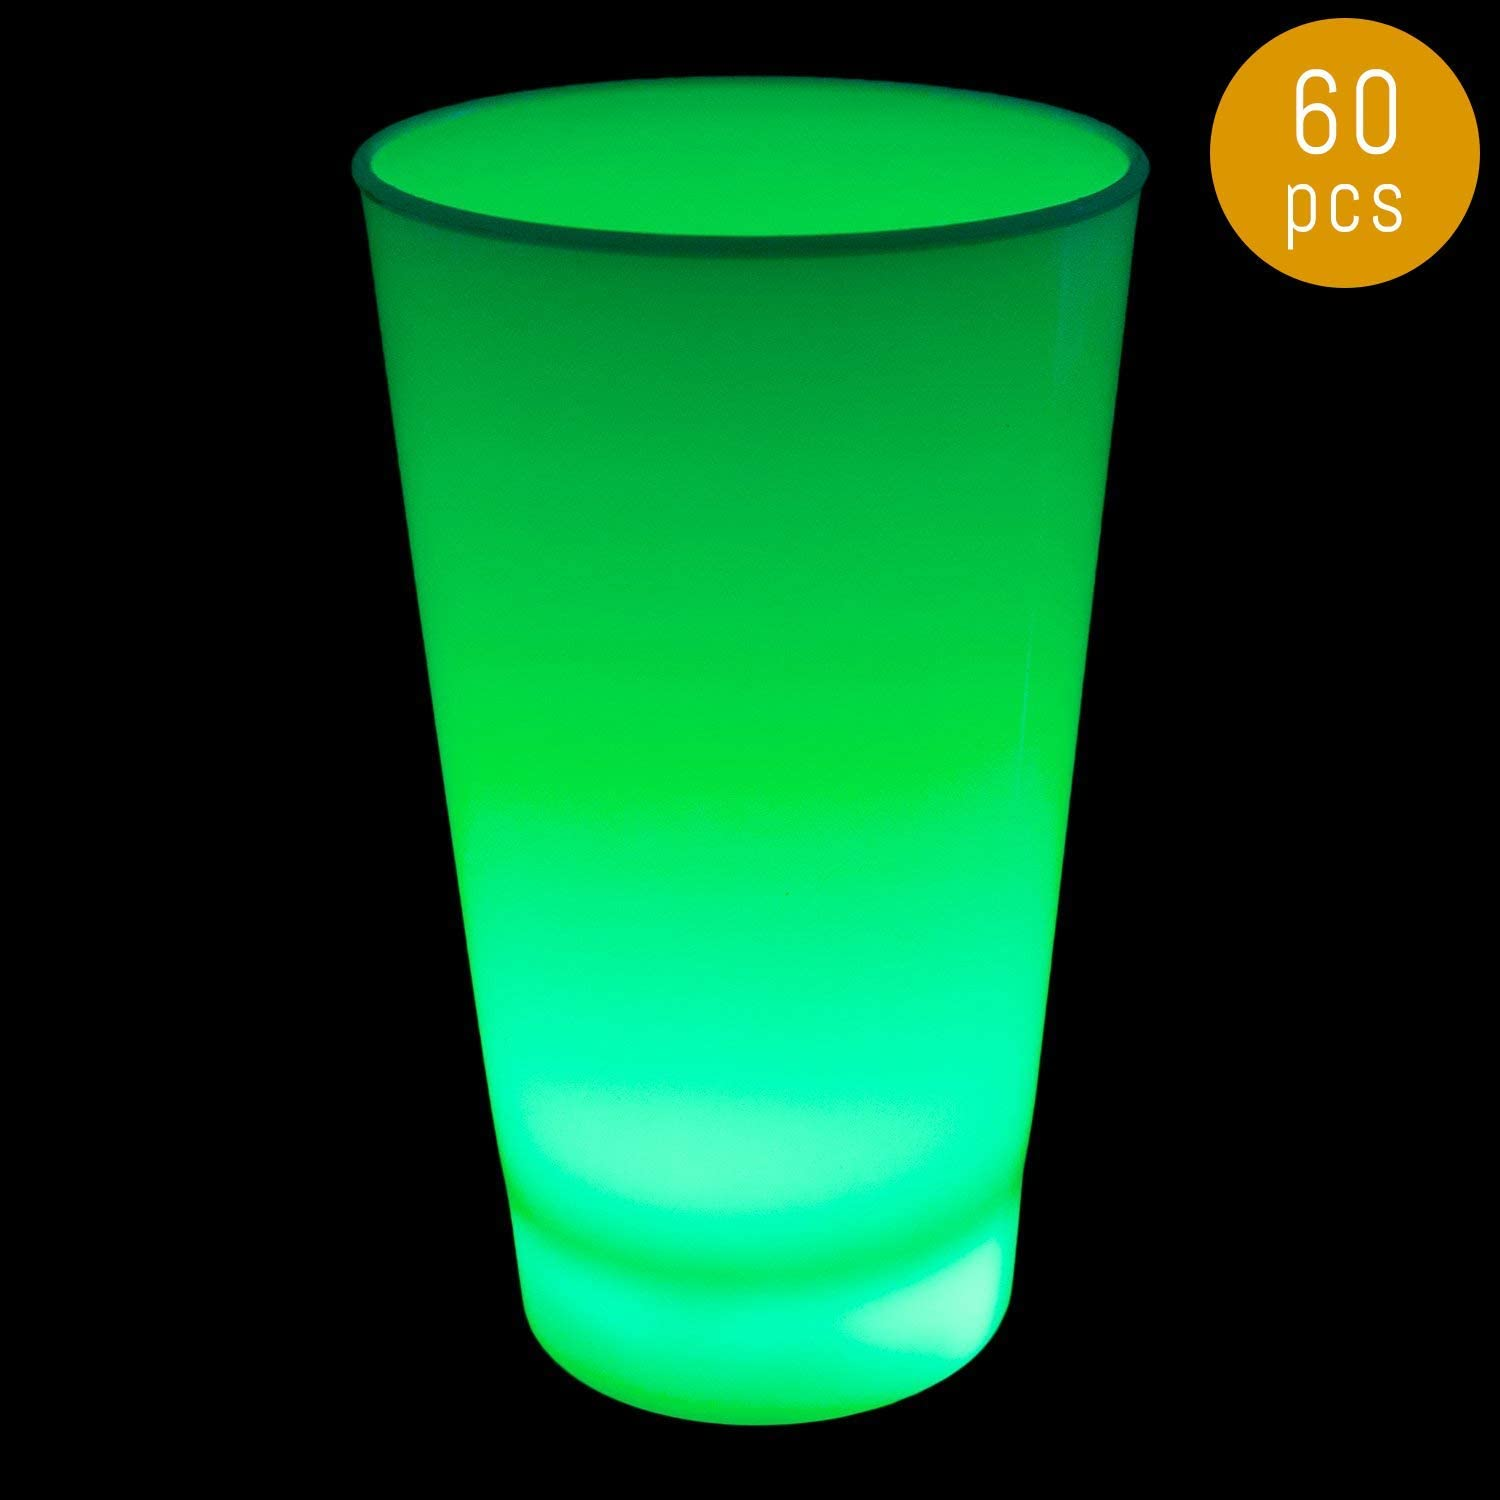 Lumistick Glow in The Dark LED Light Up Cup 16oz - Multi Color Illuminates Party Cup - Luminous Blinking Fancy Cups Supllies (Green, 60 Cups)